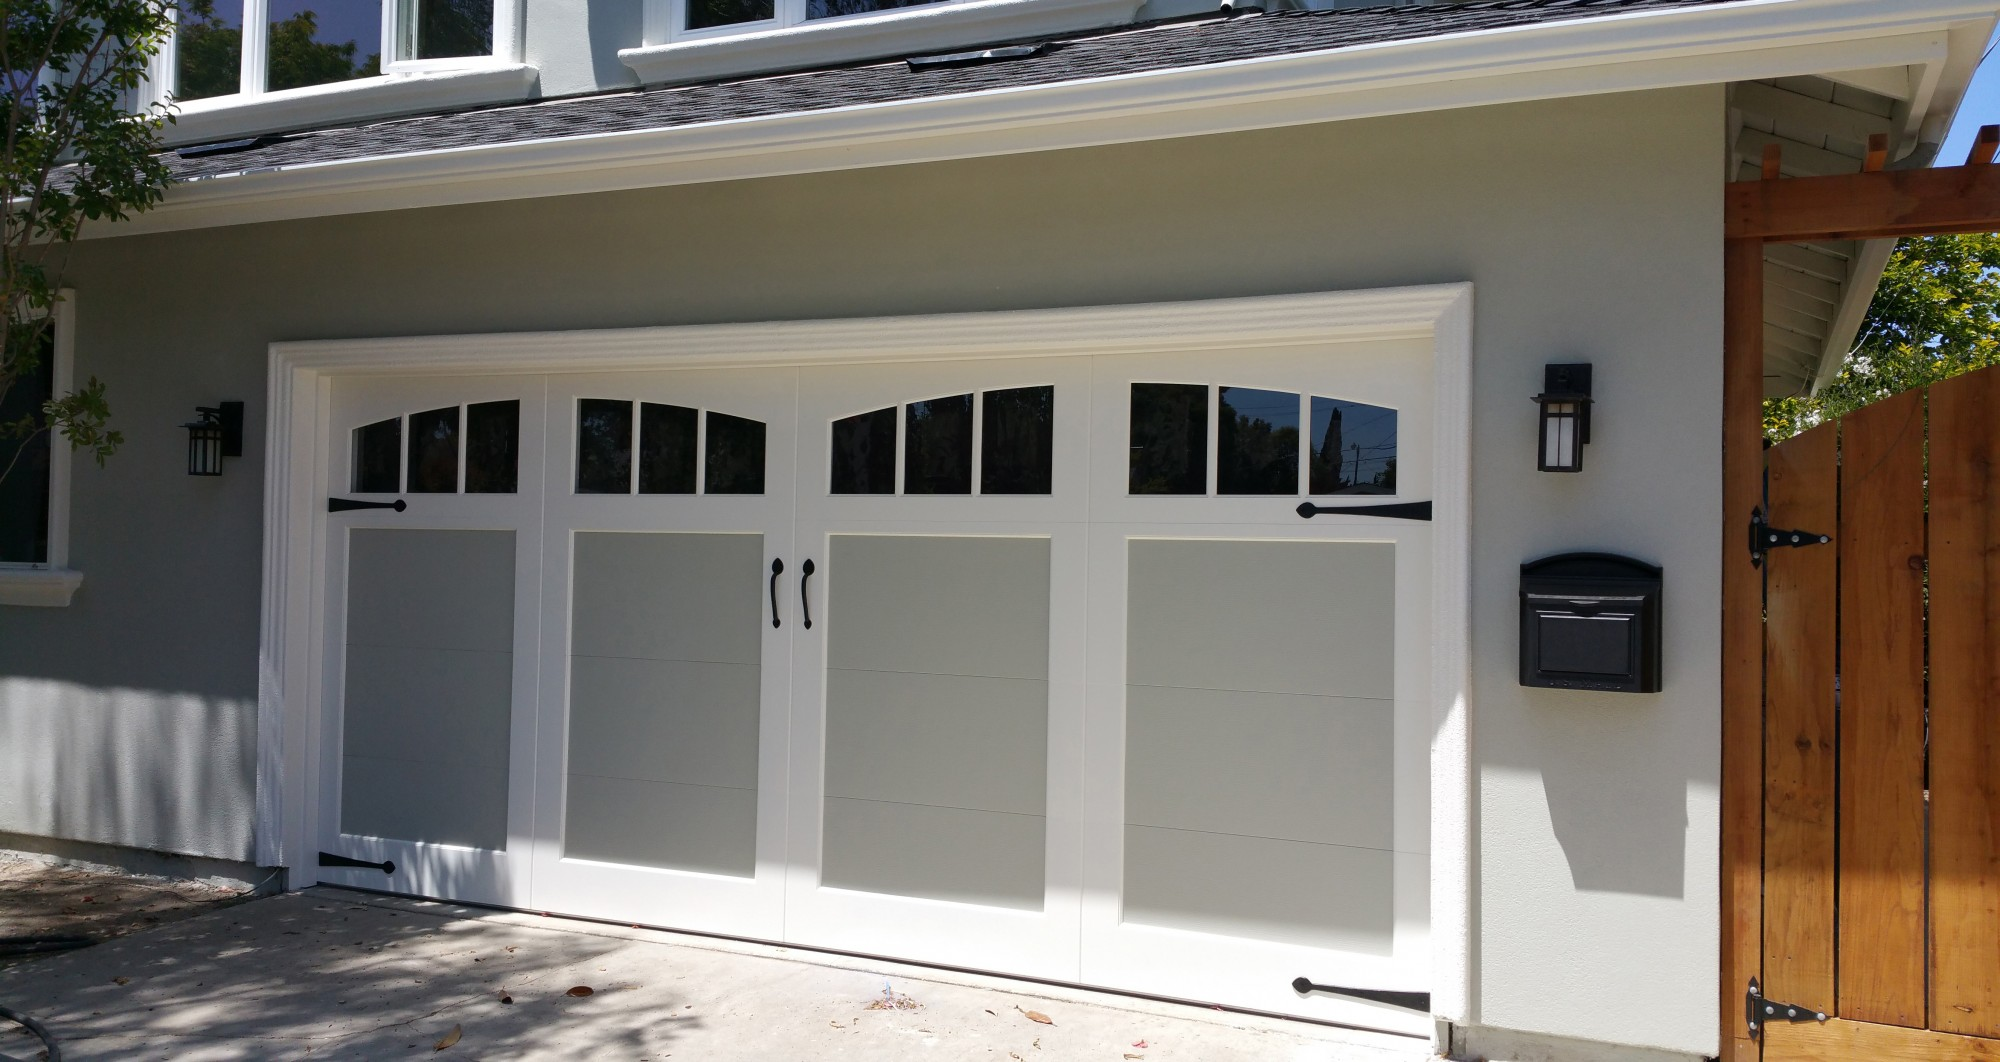 & Therma Elite™ - Northwest Door